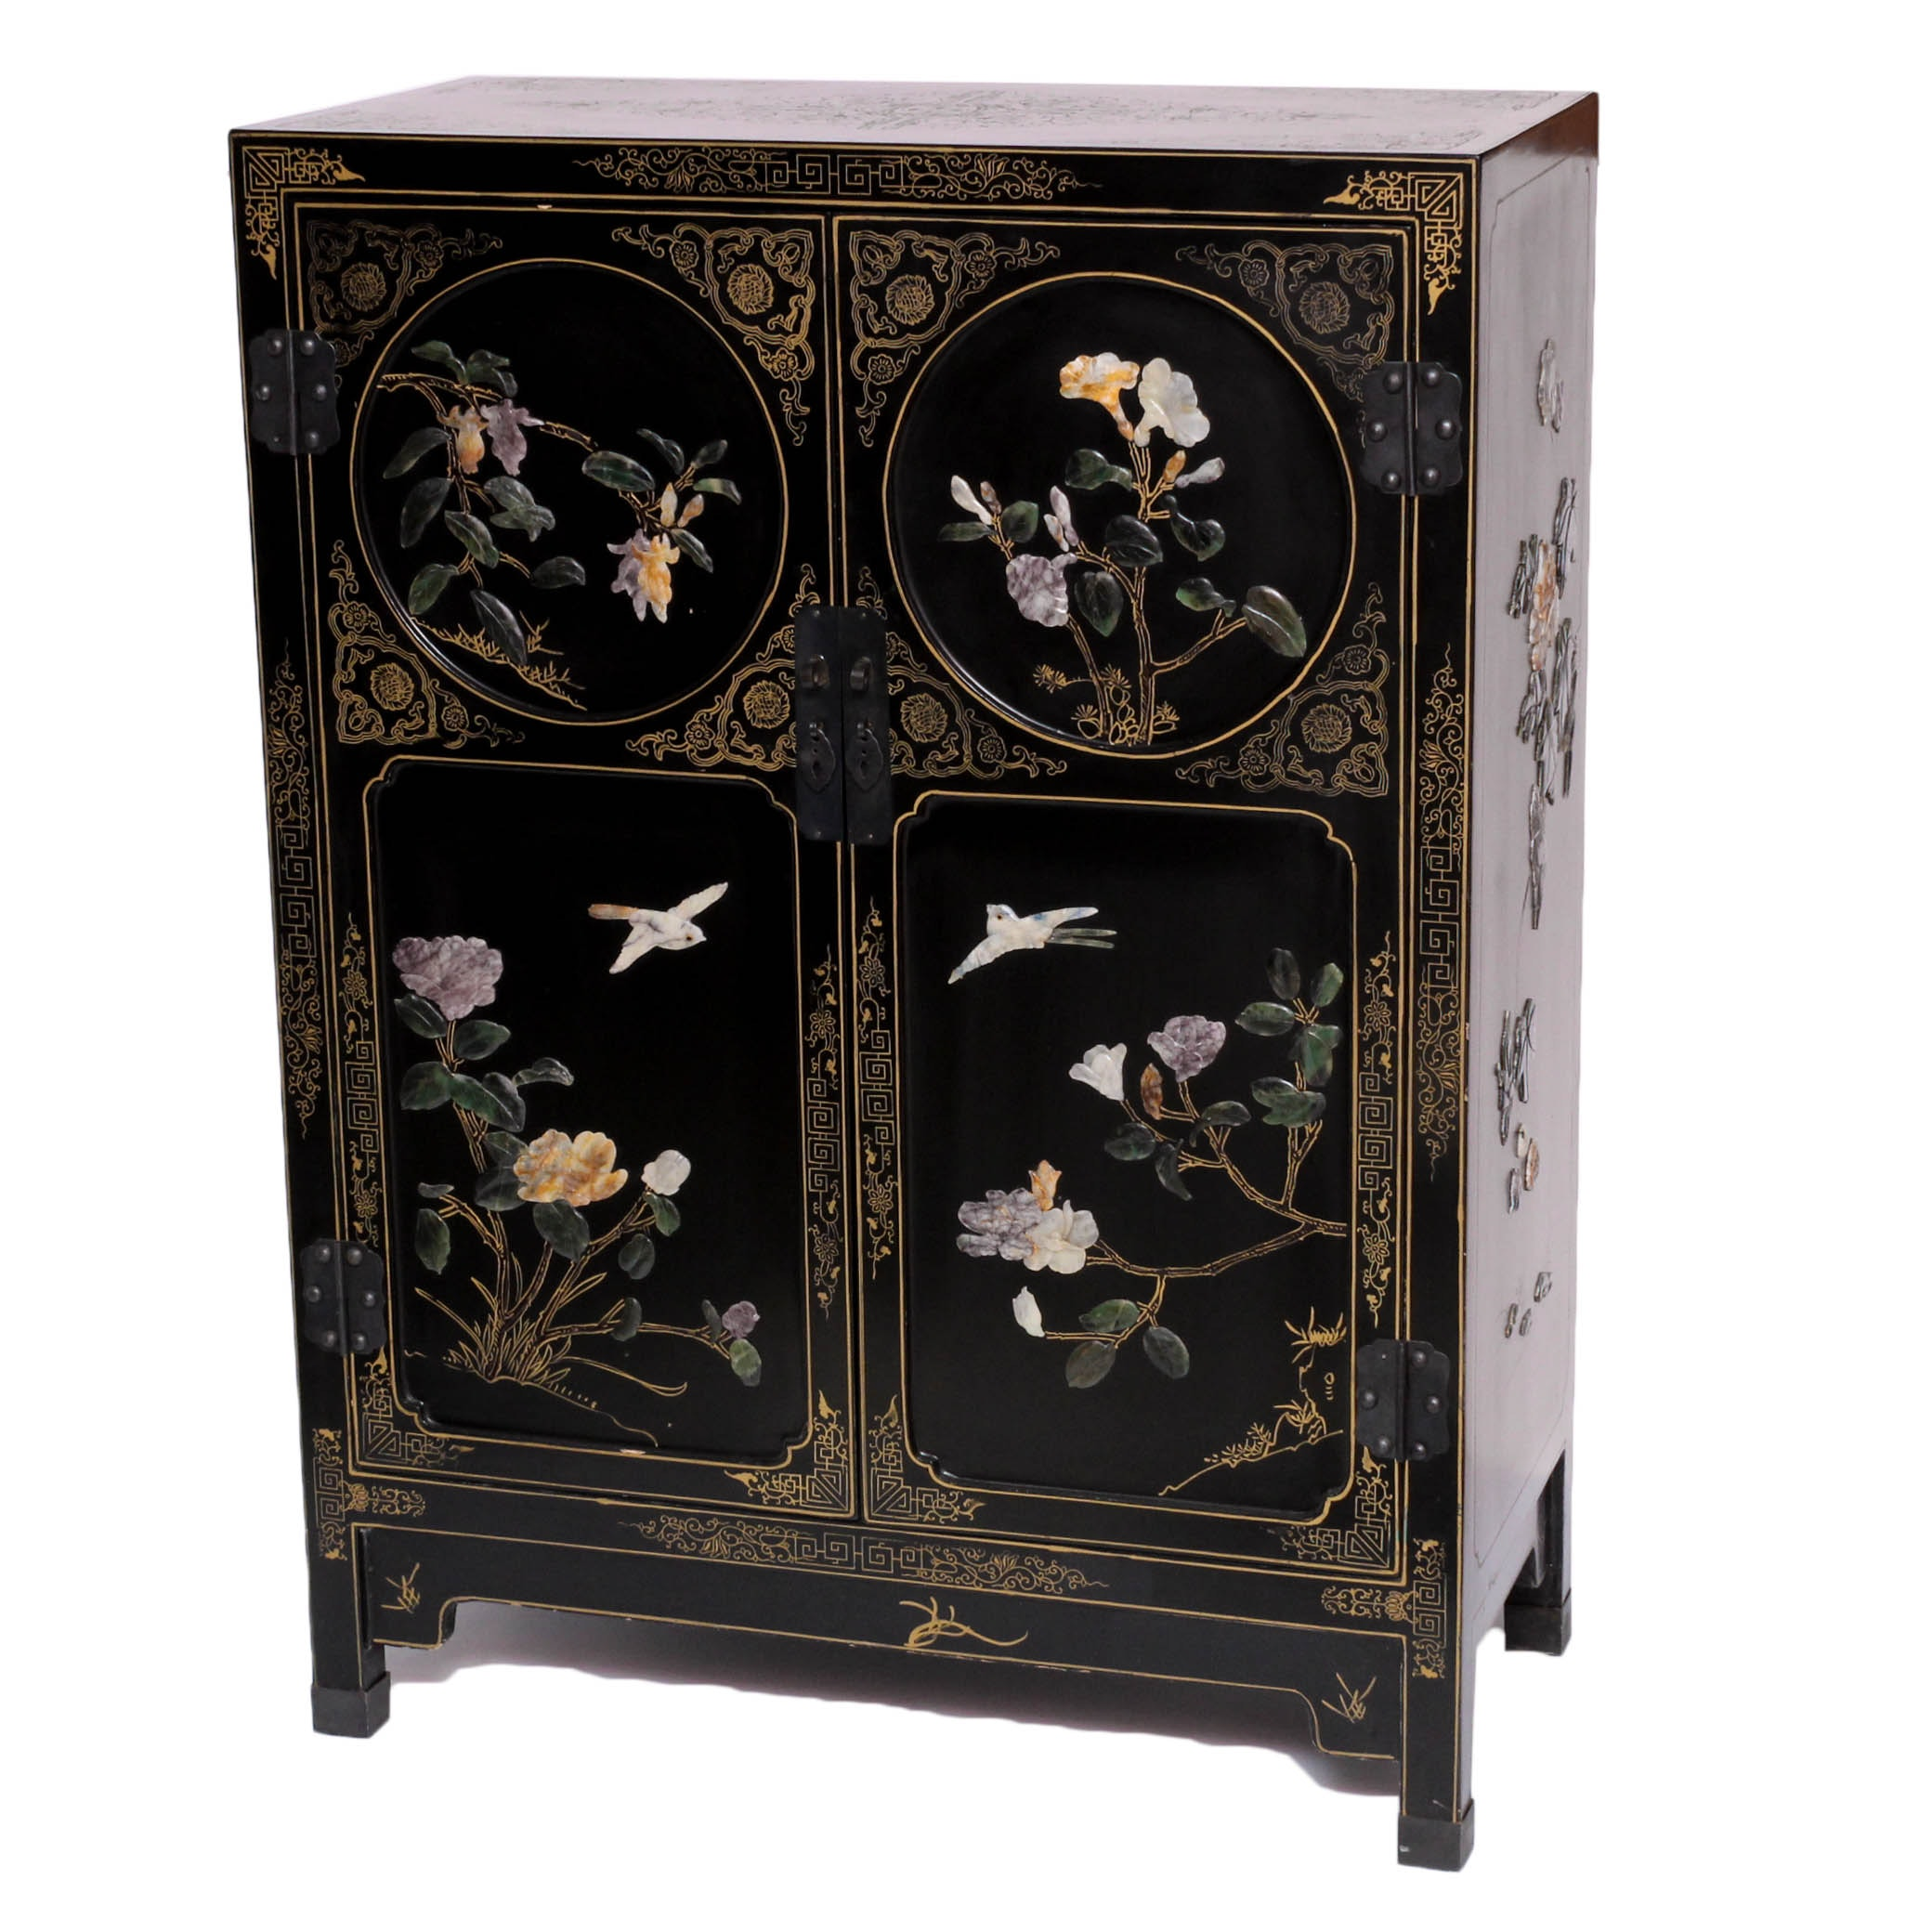 Chinese Lacquered Cabinet with Carved Stone Accents by Jinlong